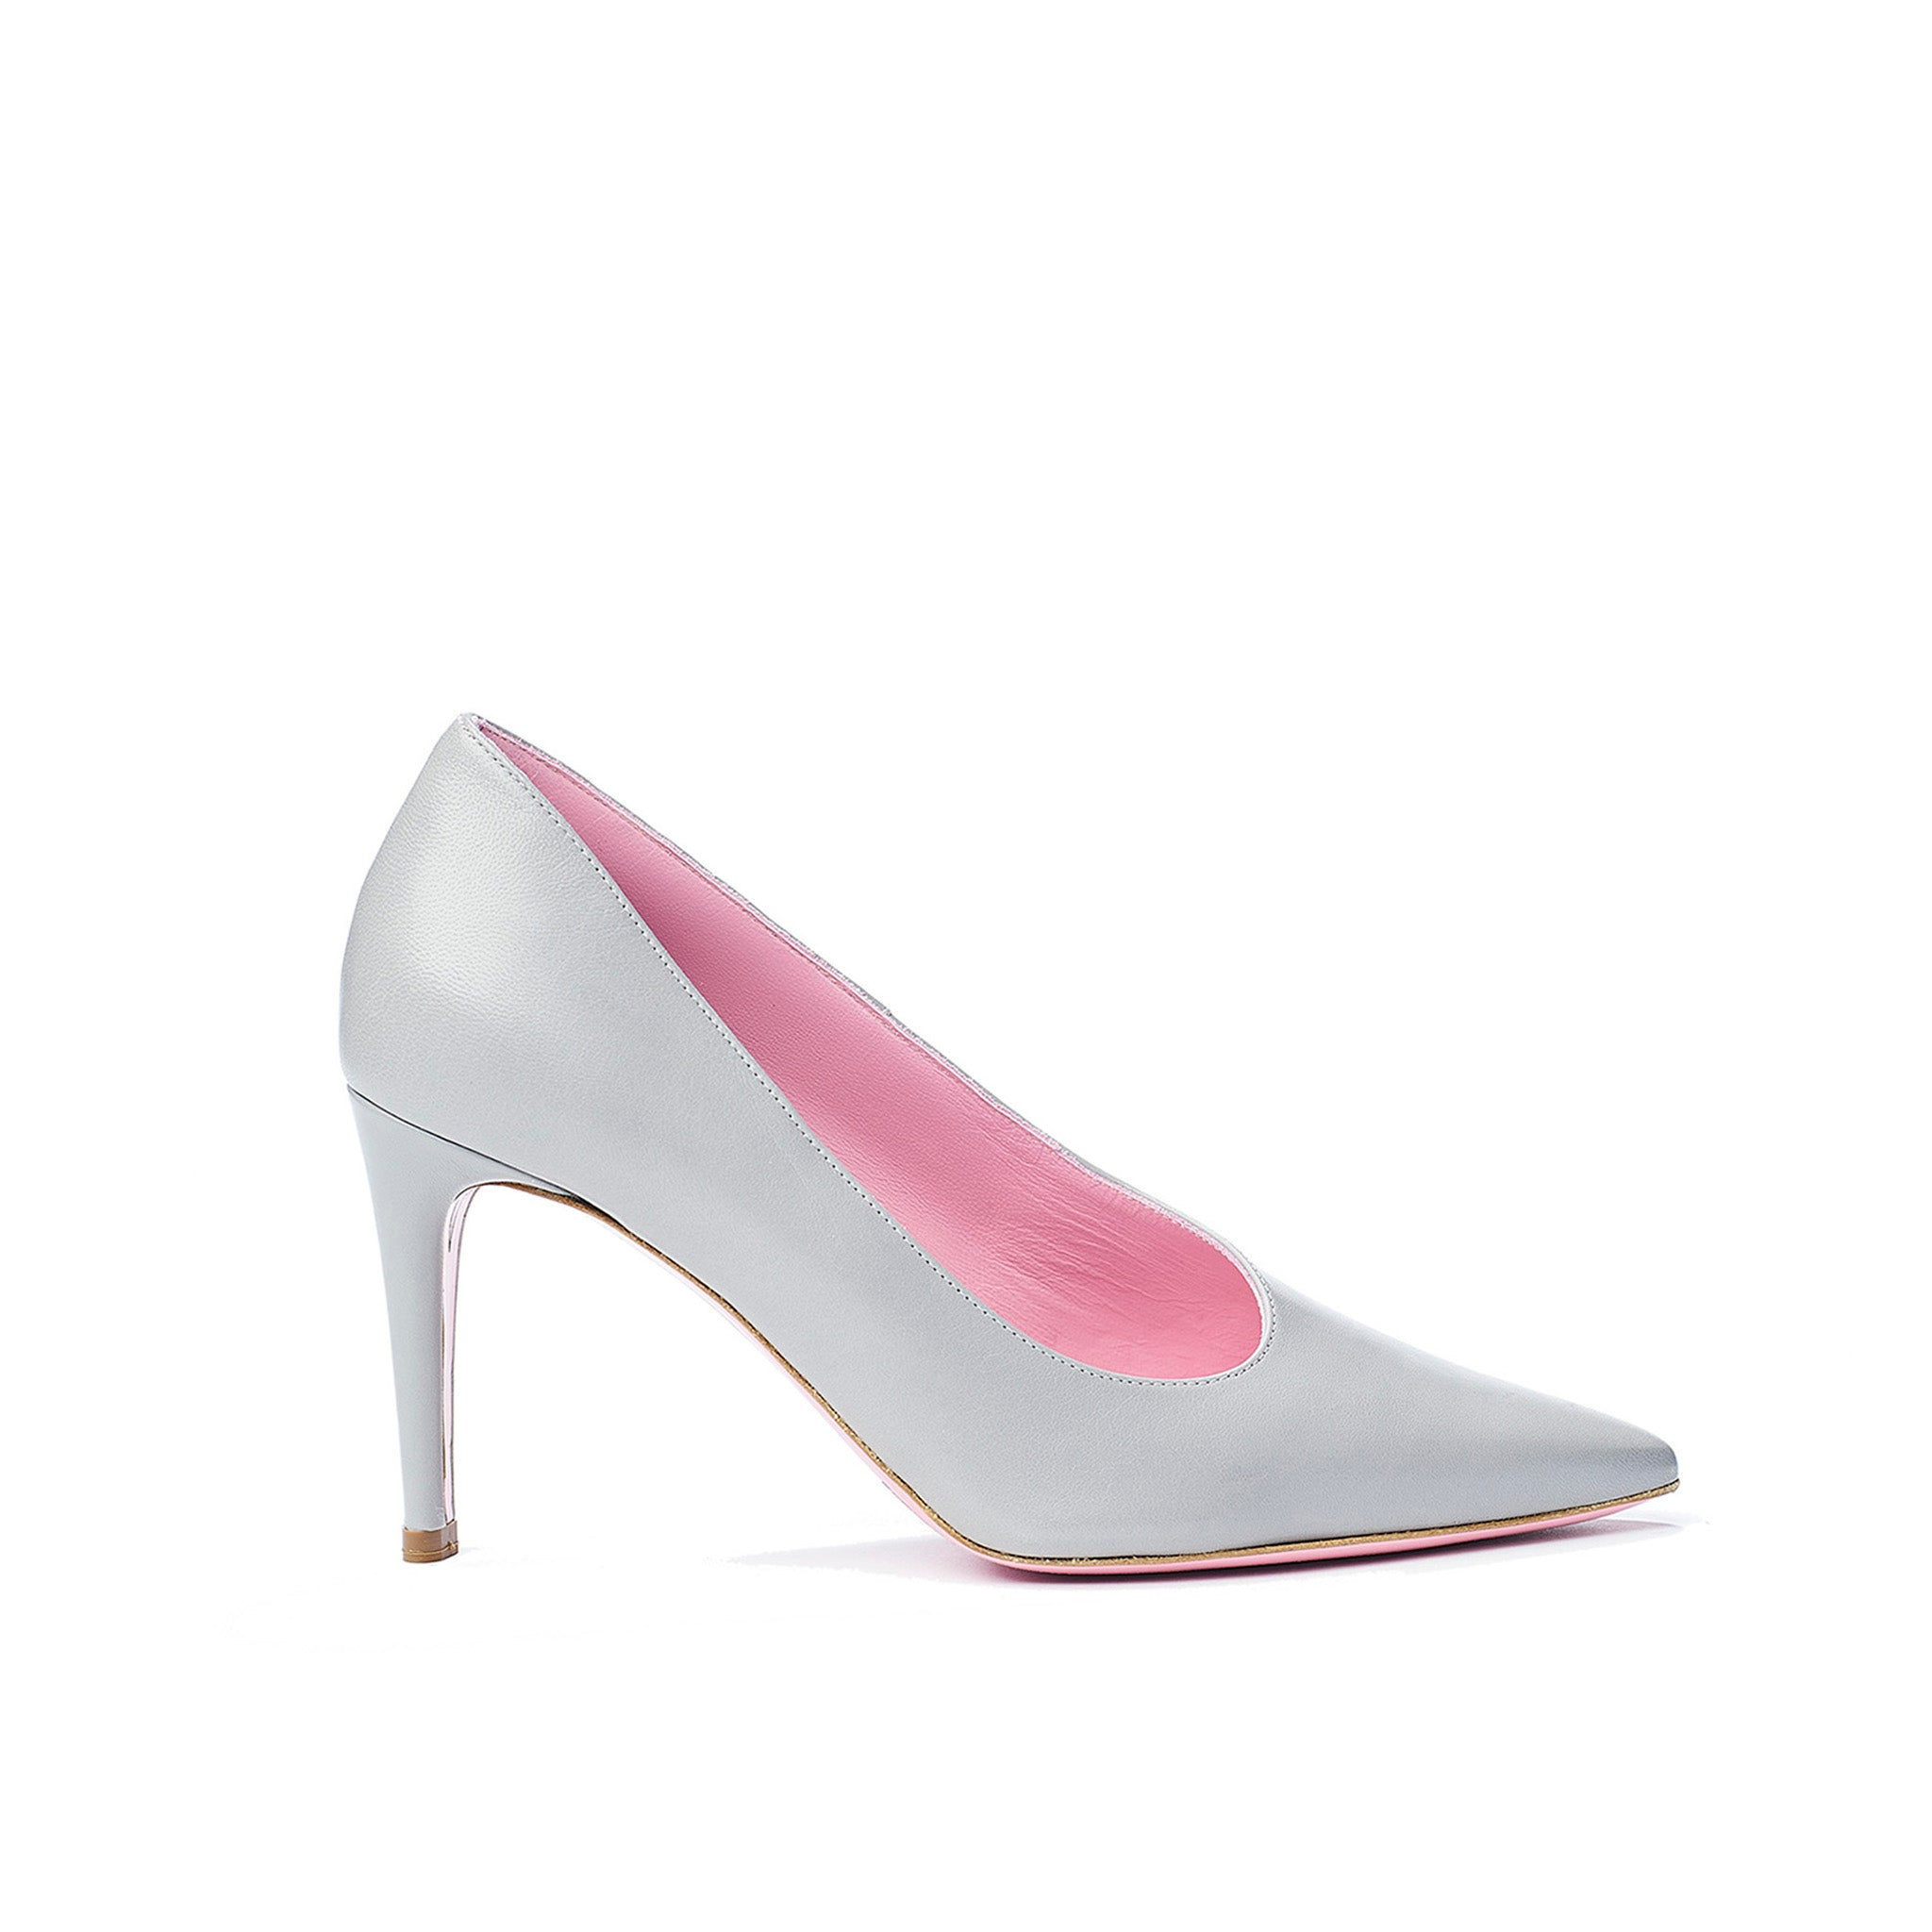 Phare Asymmetrical pump in grigio leather